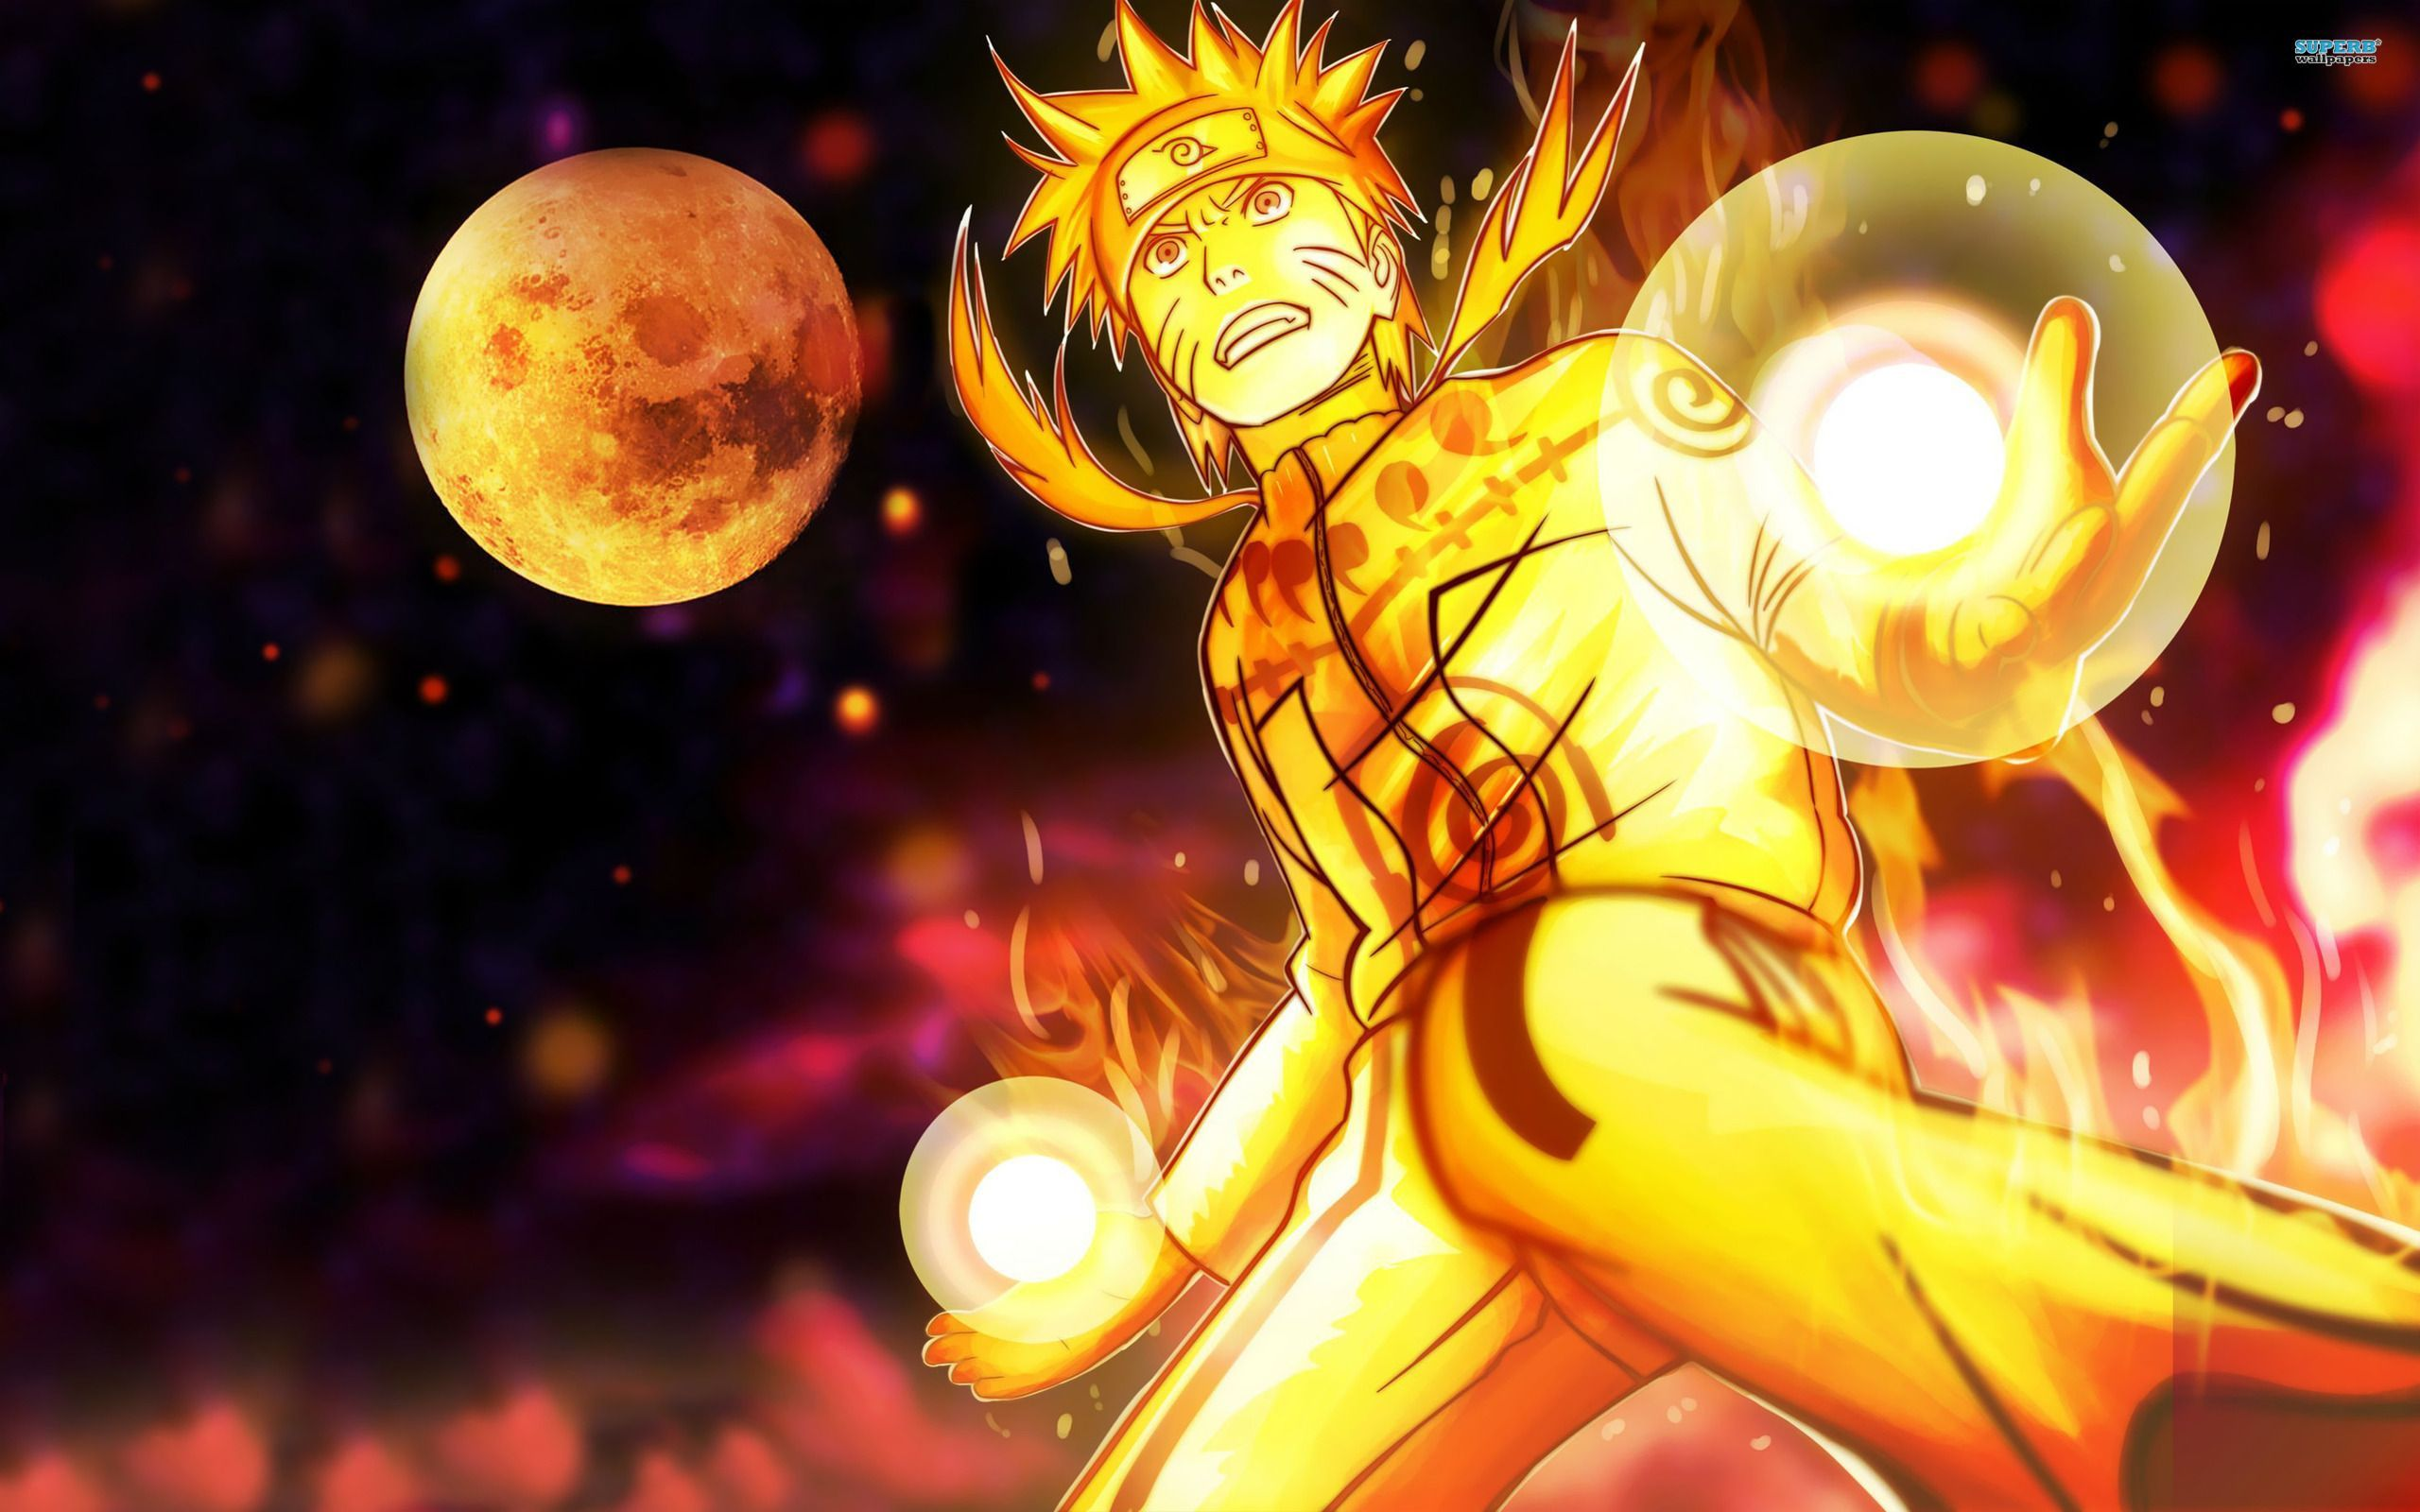 Pin By Jennifersamme1234 On Naruto In 2020 Naruto Wallpaper Iphone Cool Anime Wallpapers Hd Anime Wallpapers